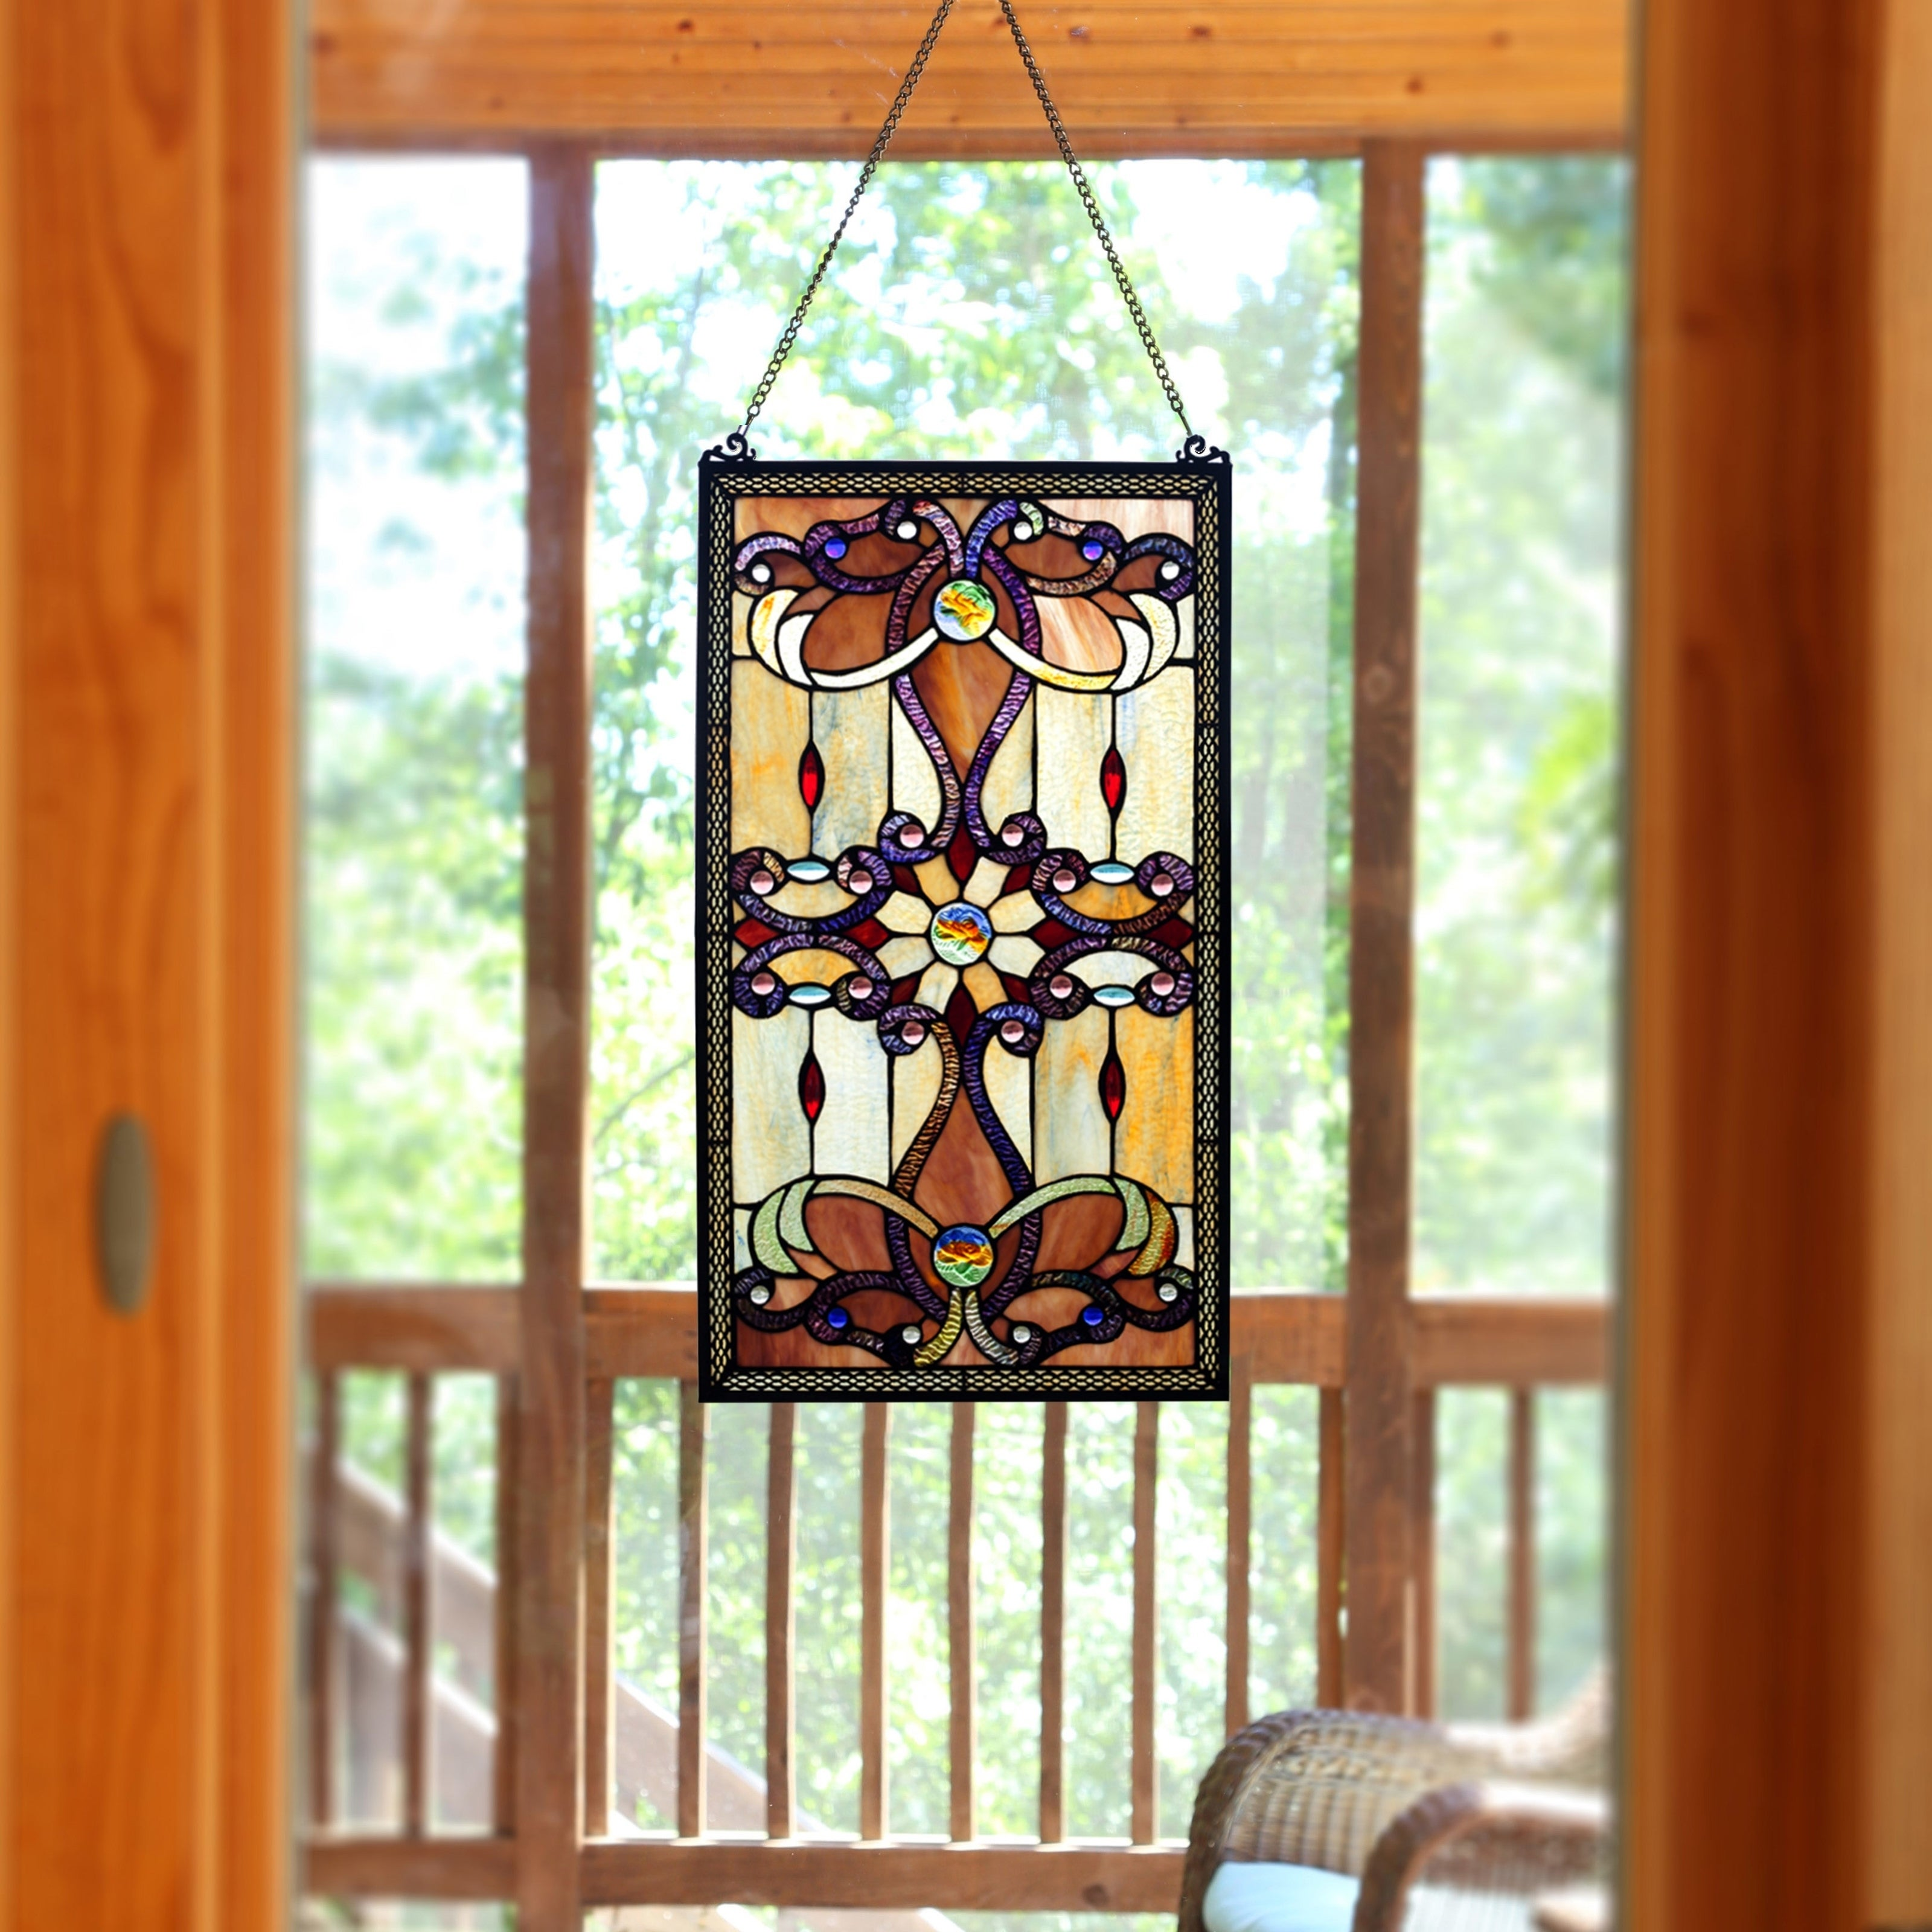 Shop Black Friday Deals On River Of Goods Brandi S Amber Stained Glass 26 Inch Window Panel M Overstock 12521485